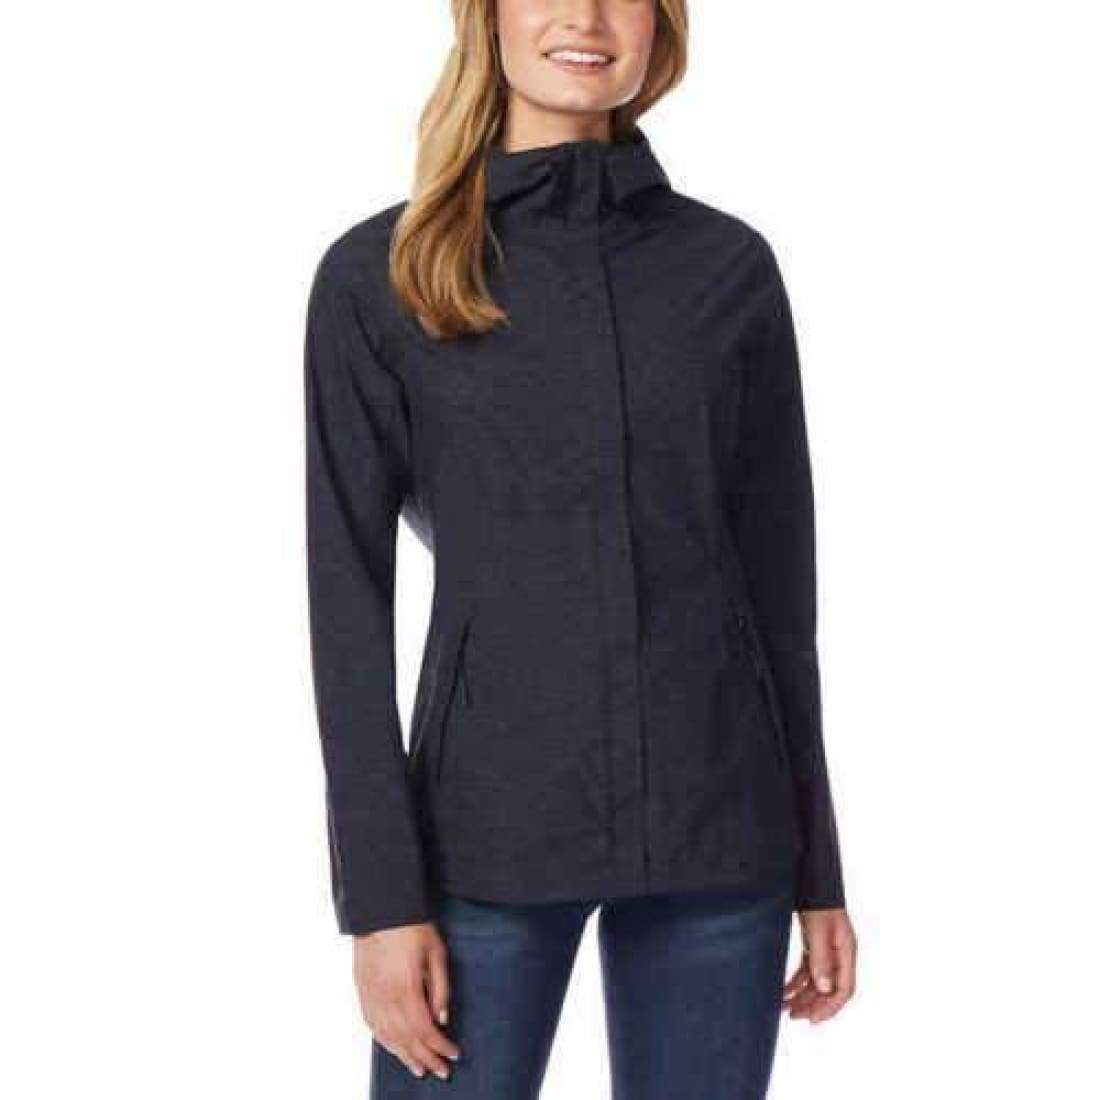 32 Degrees Womens Packable Rain Jacket M / Black Outerwear